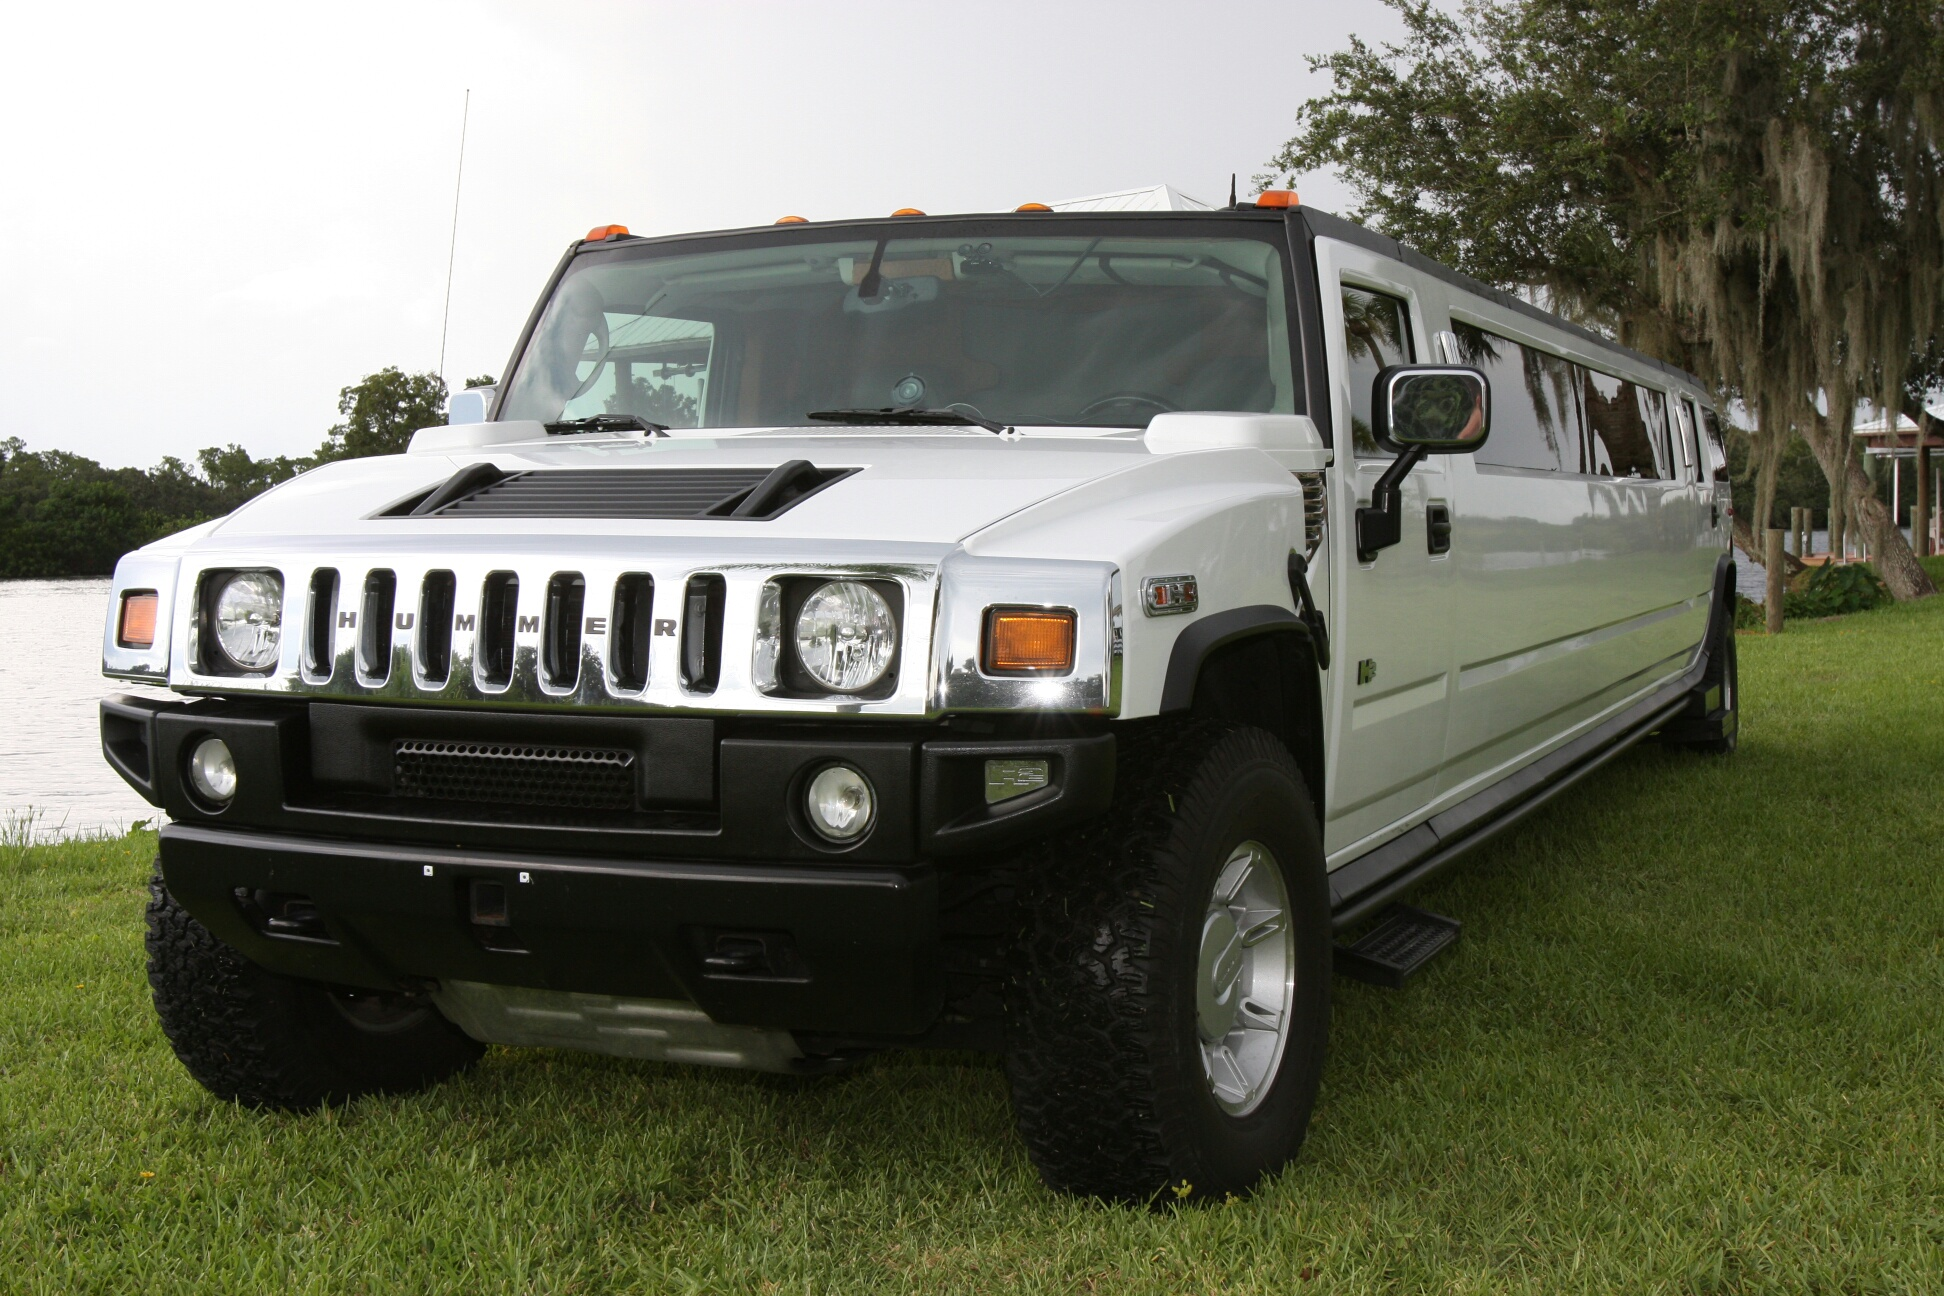 Hummer Limo New Orleans LA Save Up to 30% on Limo Rentals